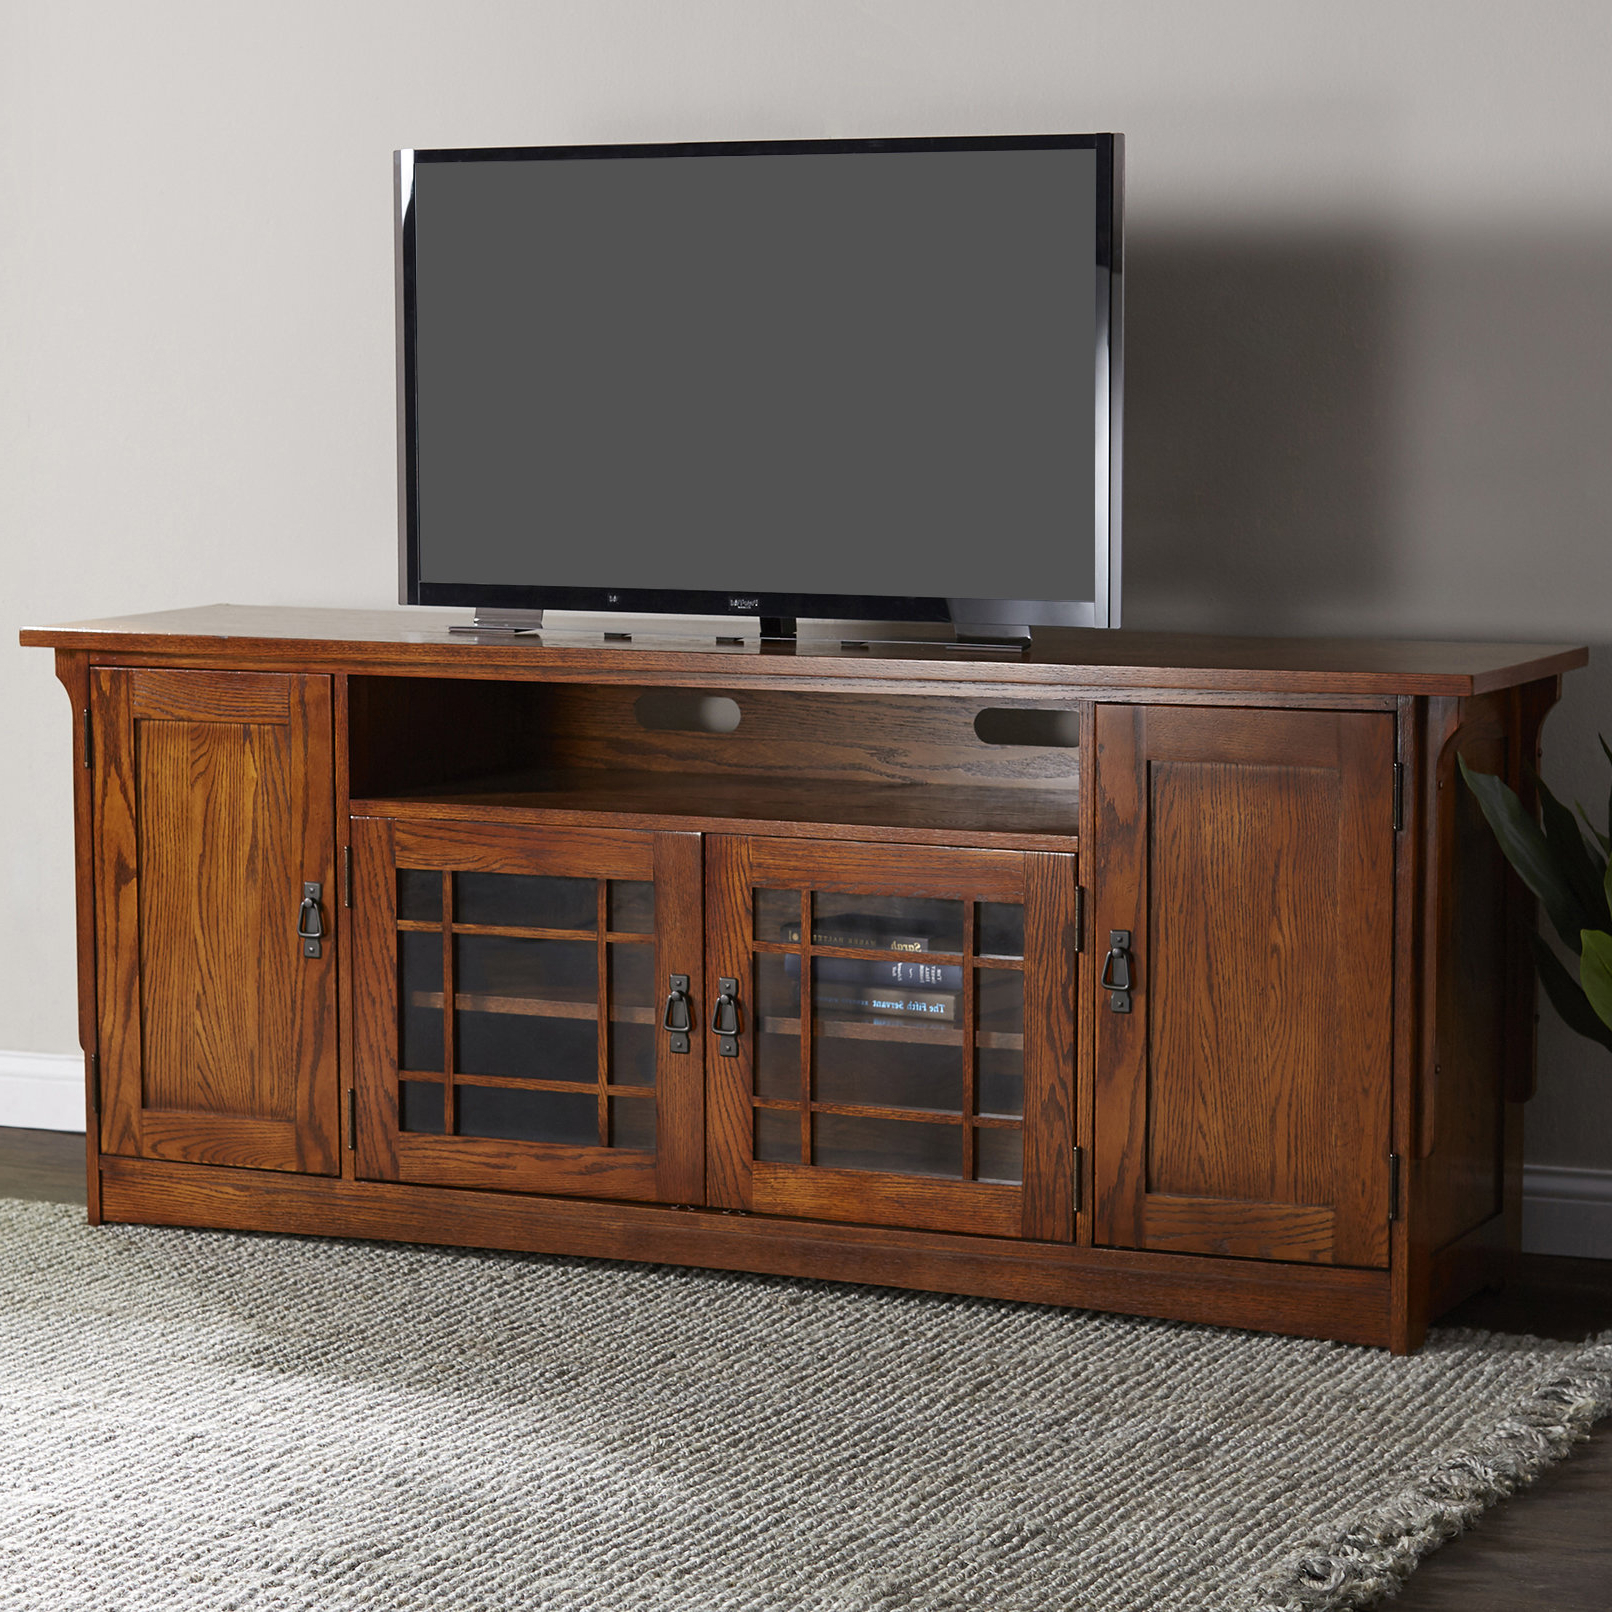 70 Inches And Larger Tv Stands | Birch Lane With Regard To Walton 74 Inch Open Tv Stands (View 15 of 20)